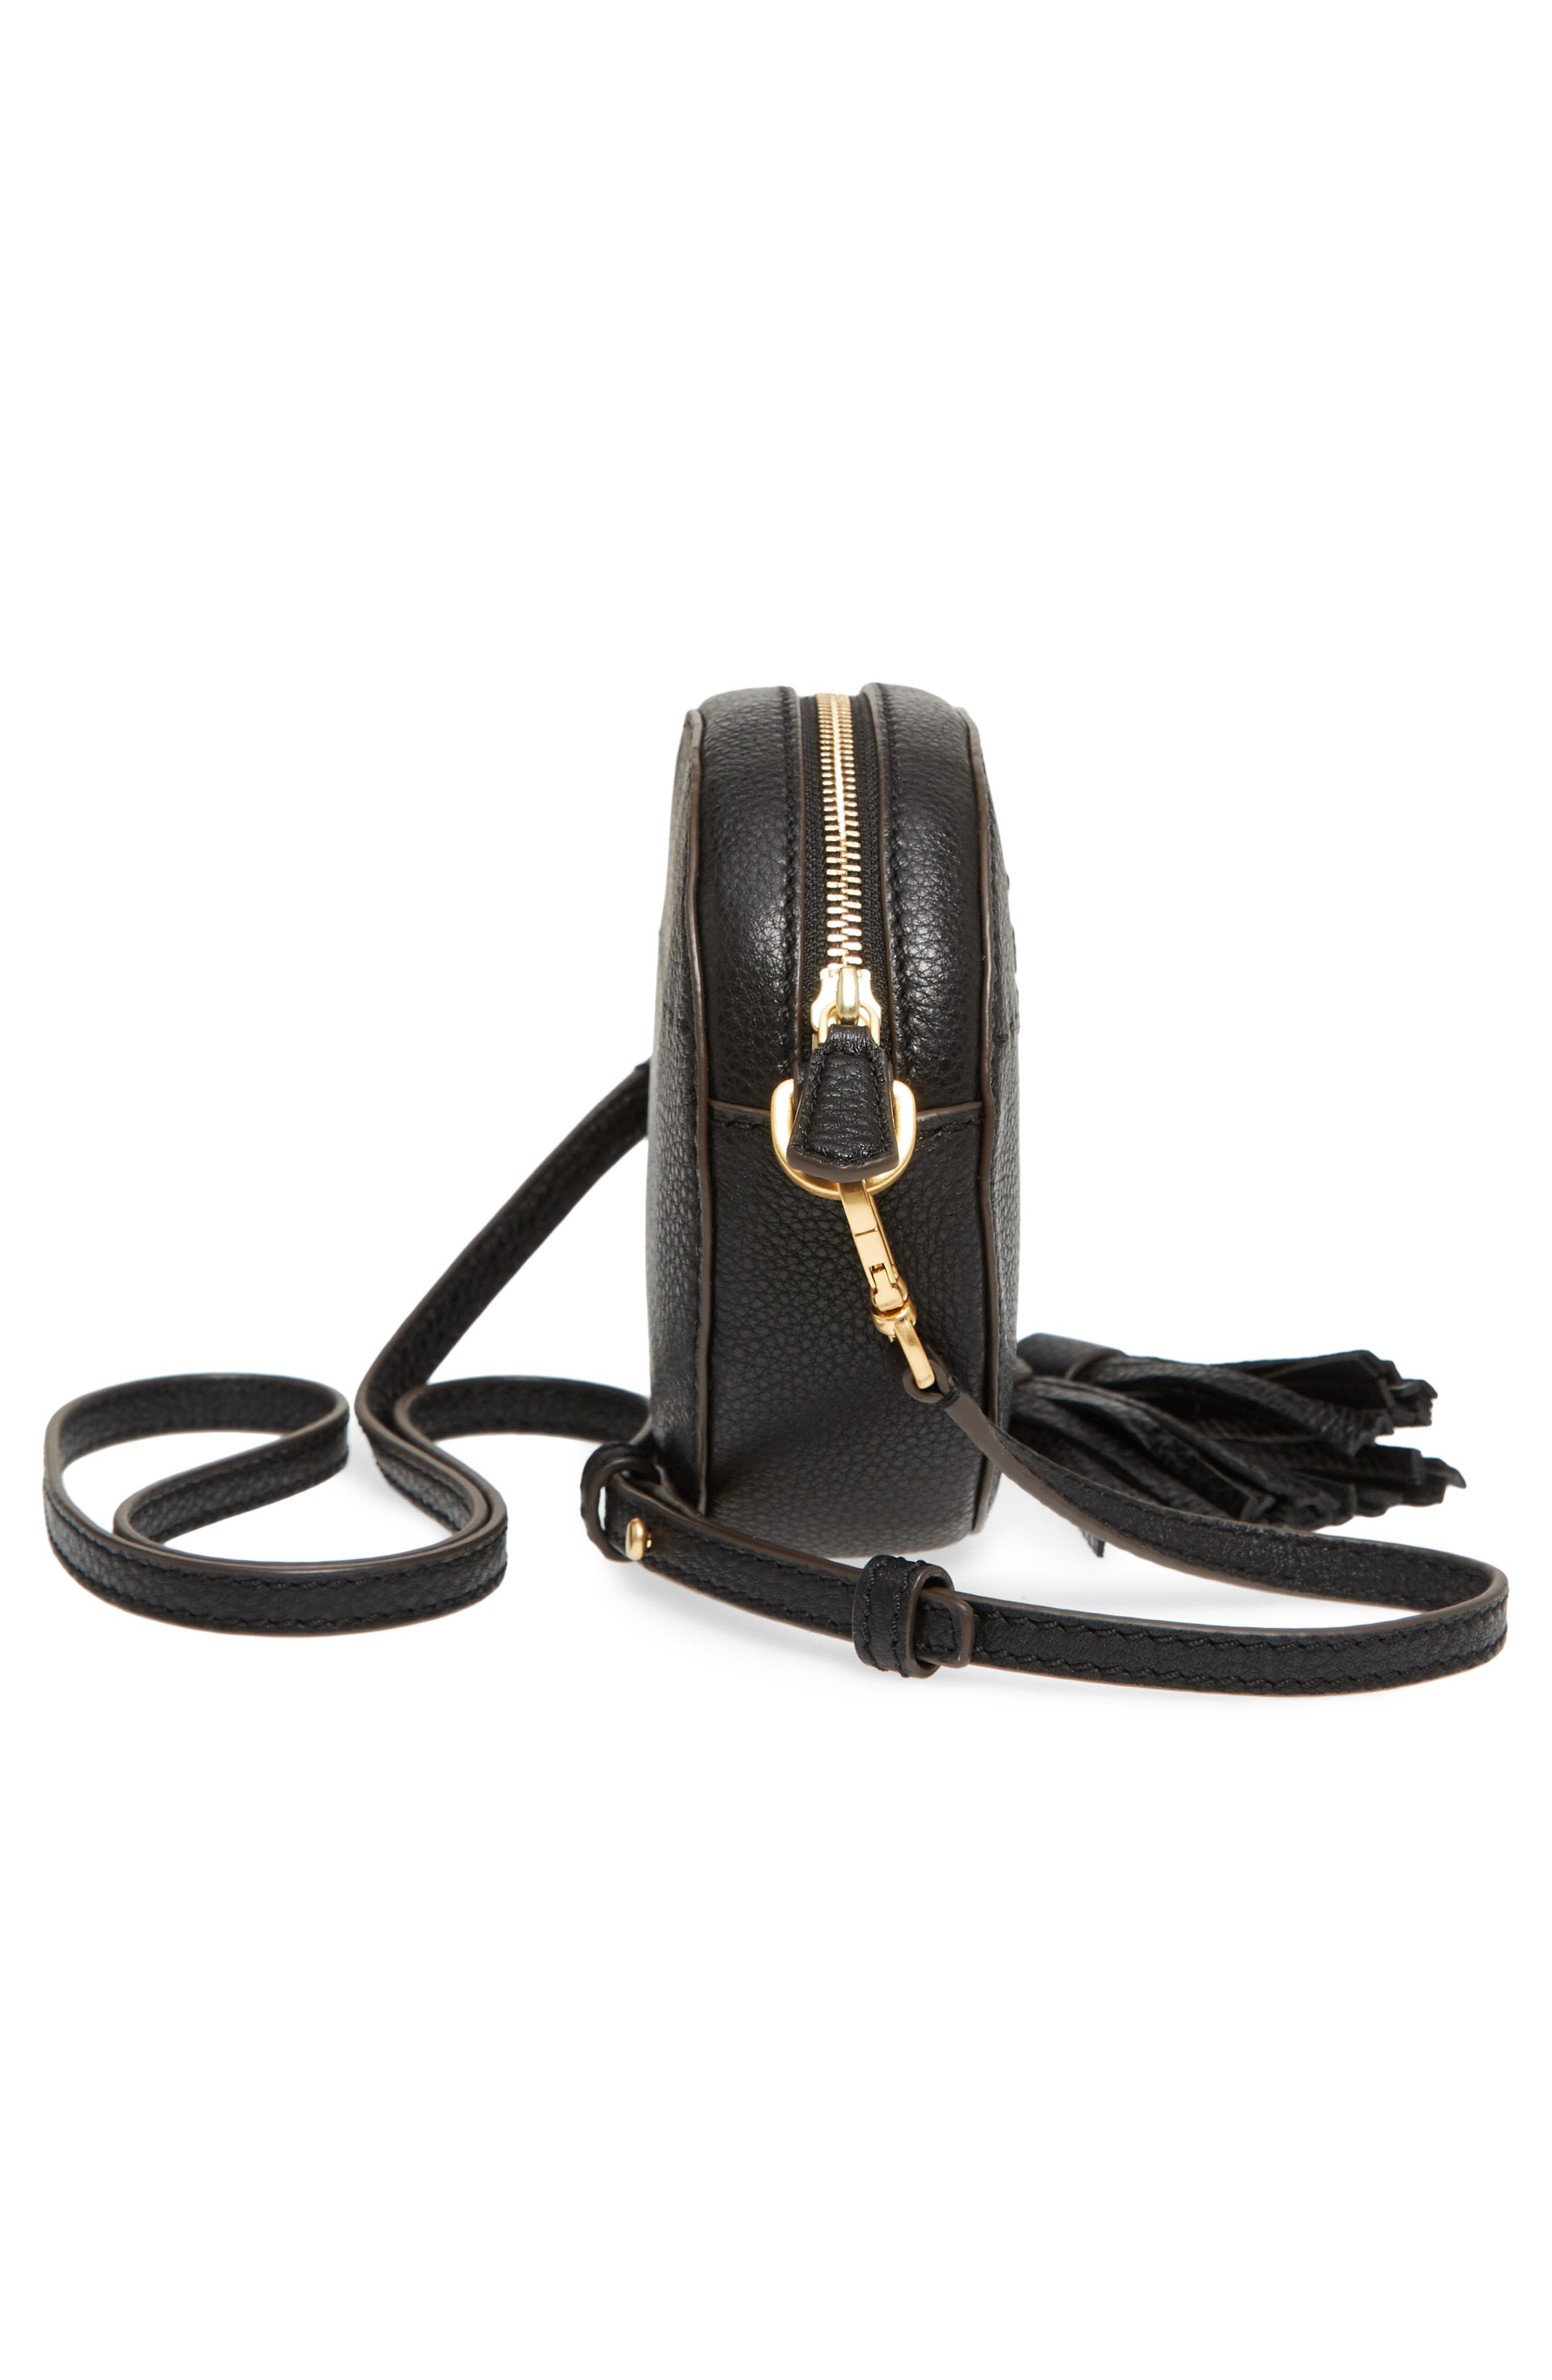 McGraw Leather Crossbody Bag,                             Alternate thumbnail 5, color,                             001